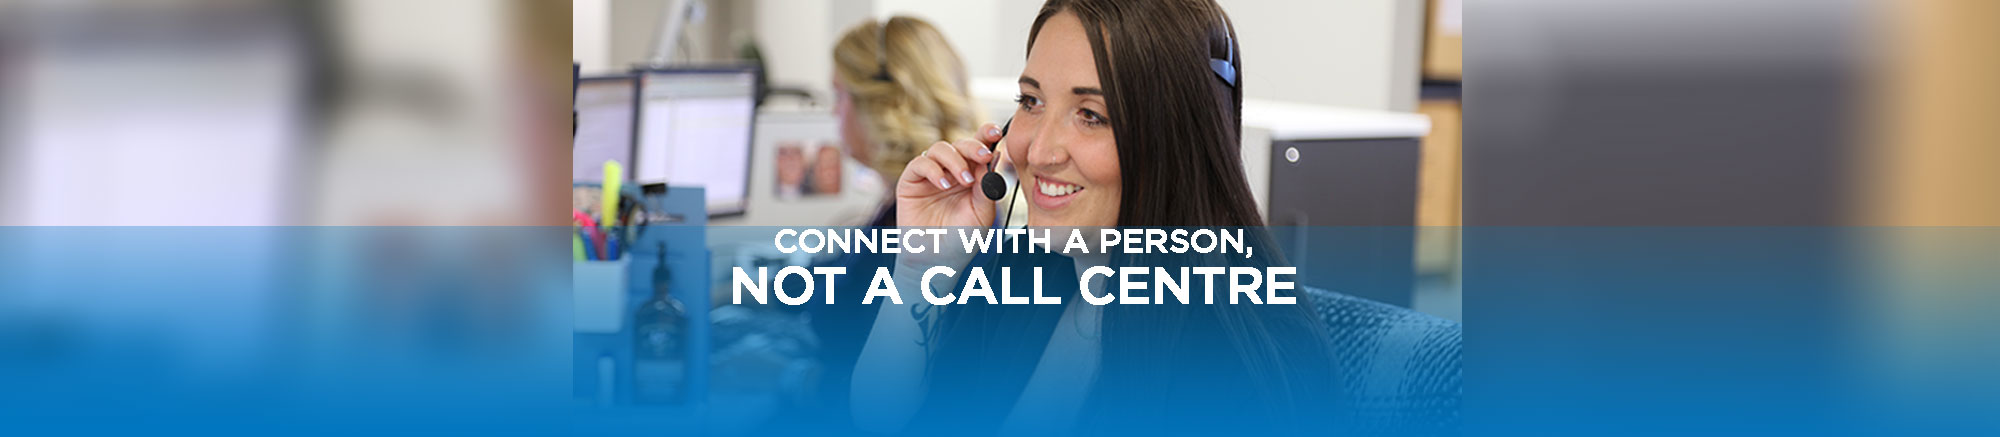 connect with a person, not a call centre